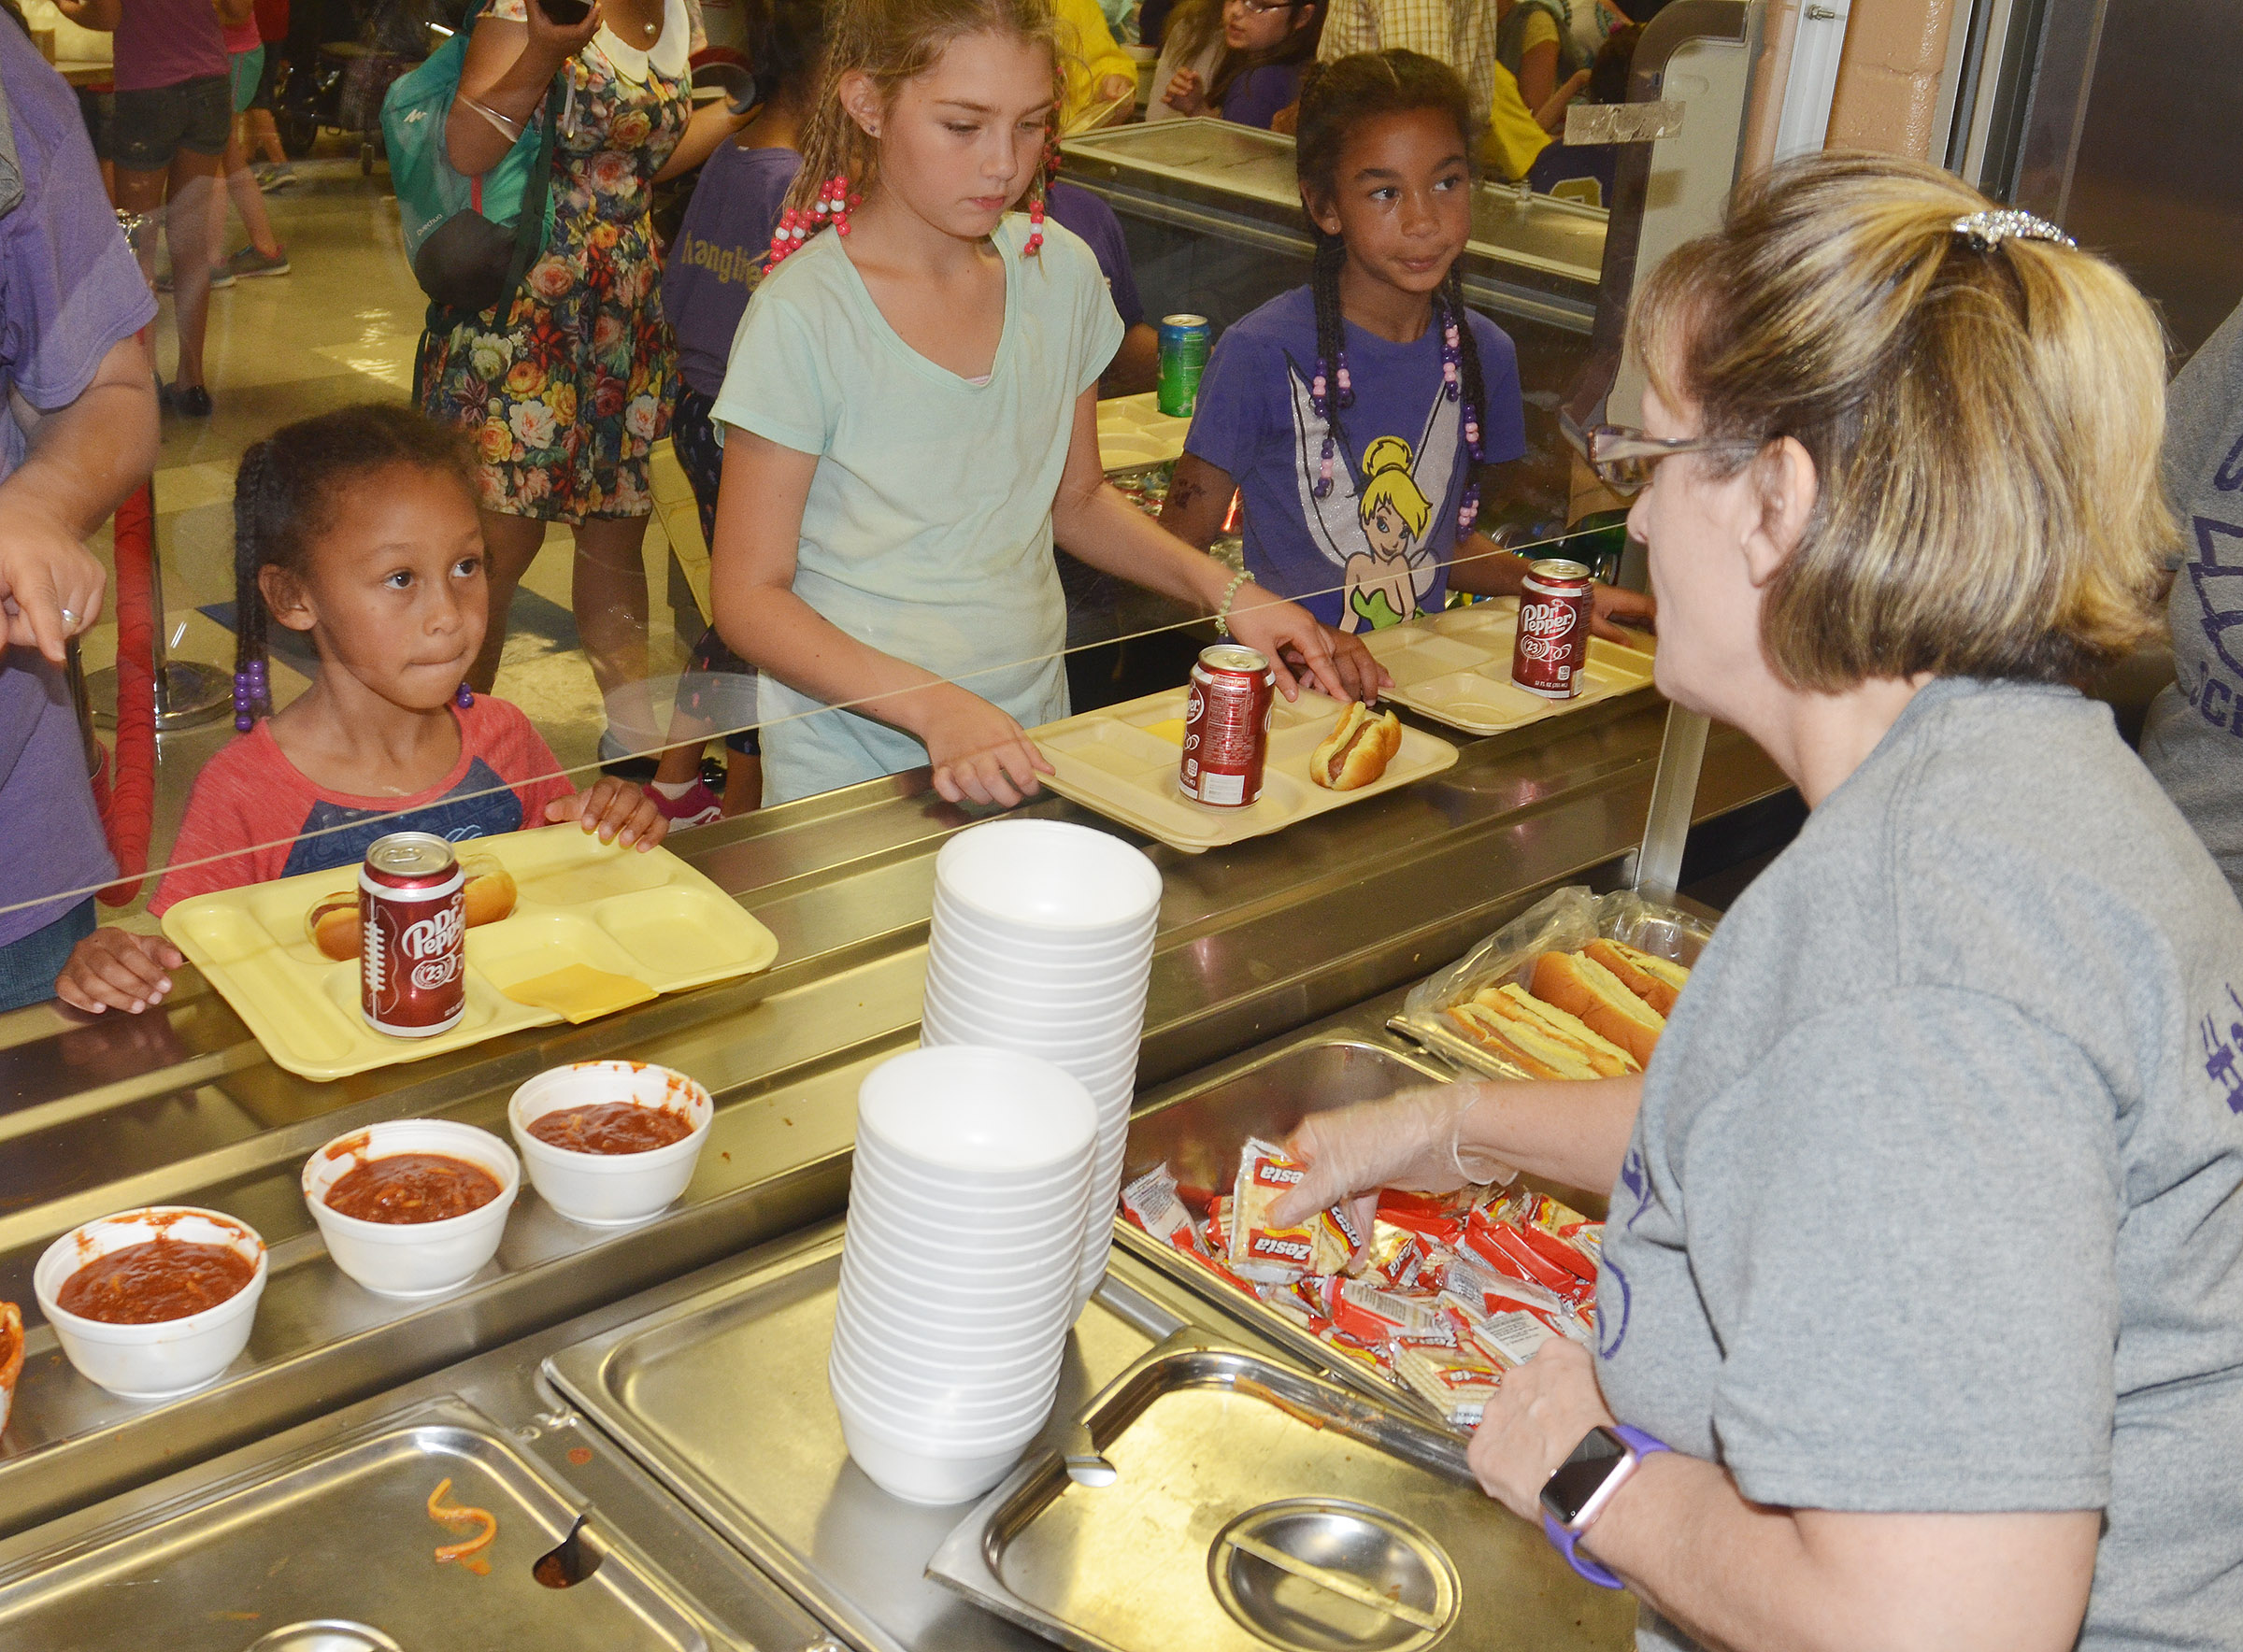 CHS teacher Juanita Young serves chili.